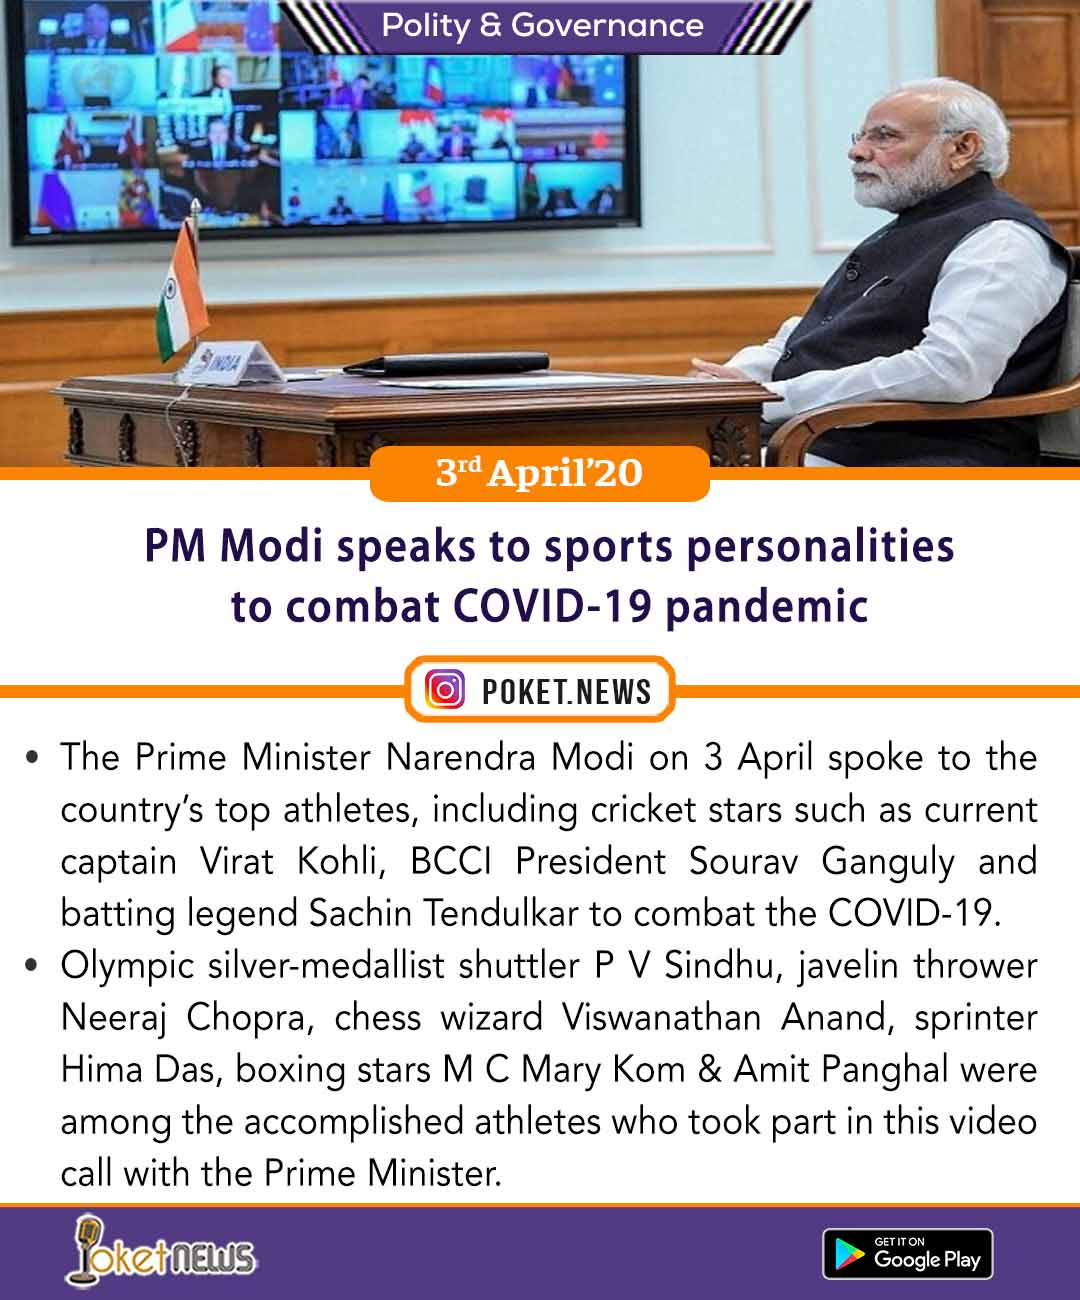 PM Modi speaks to sports personalities to combat COVID-19 pandemic